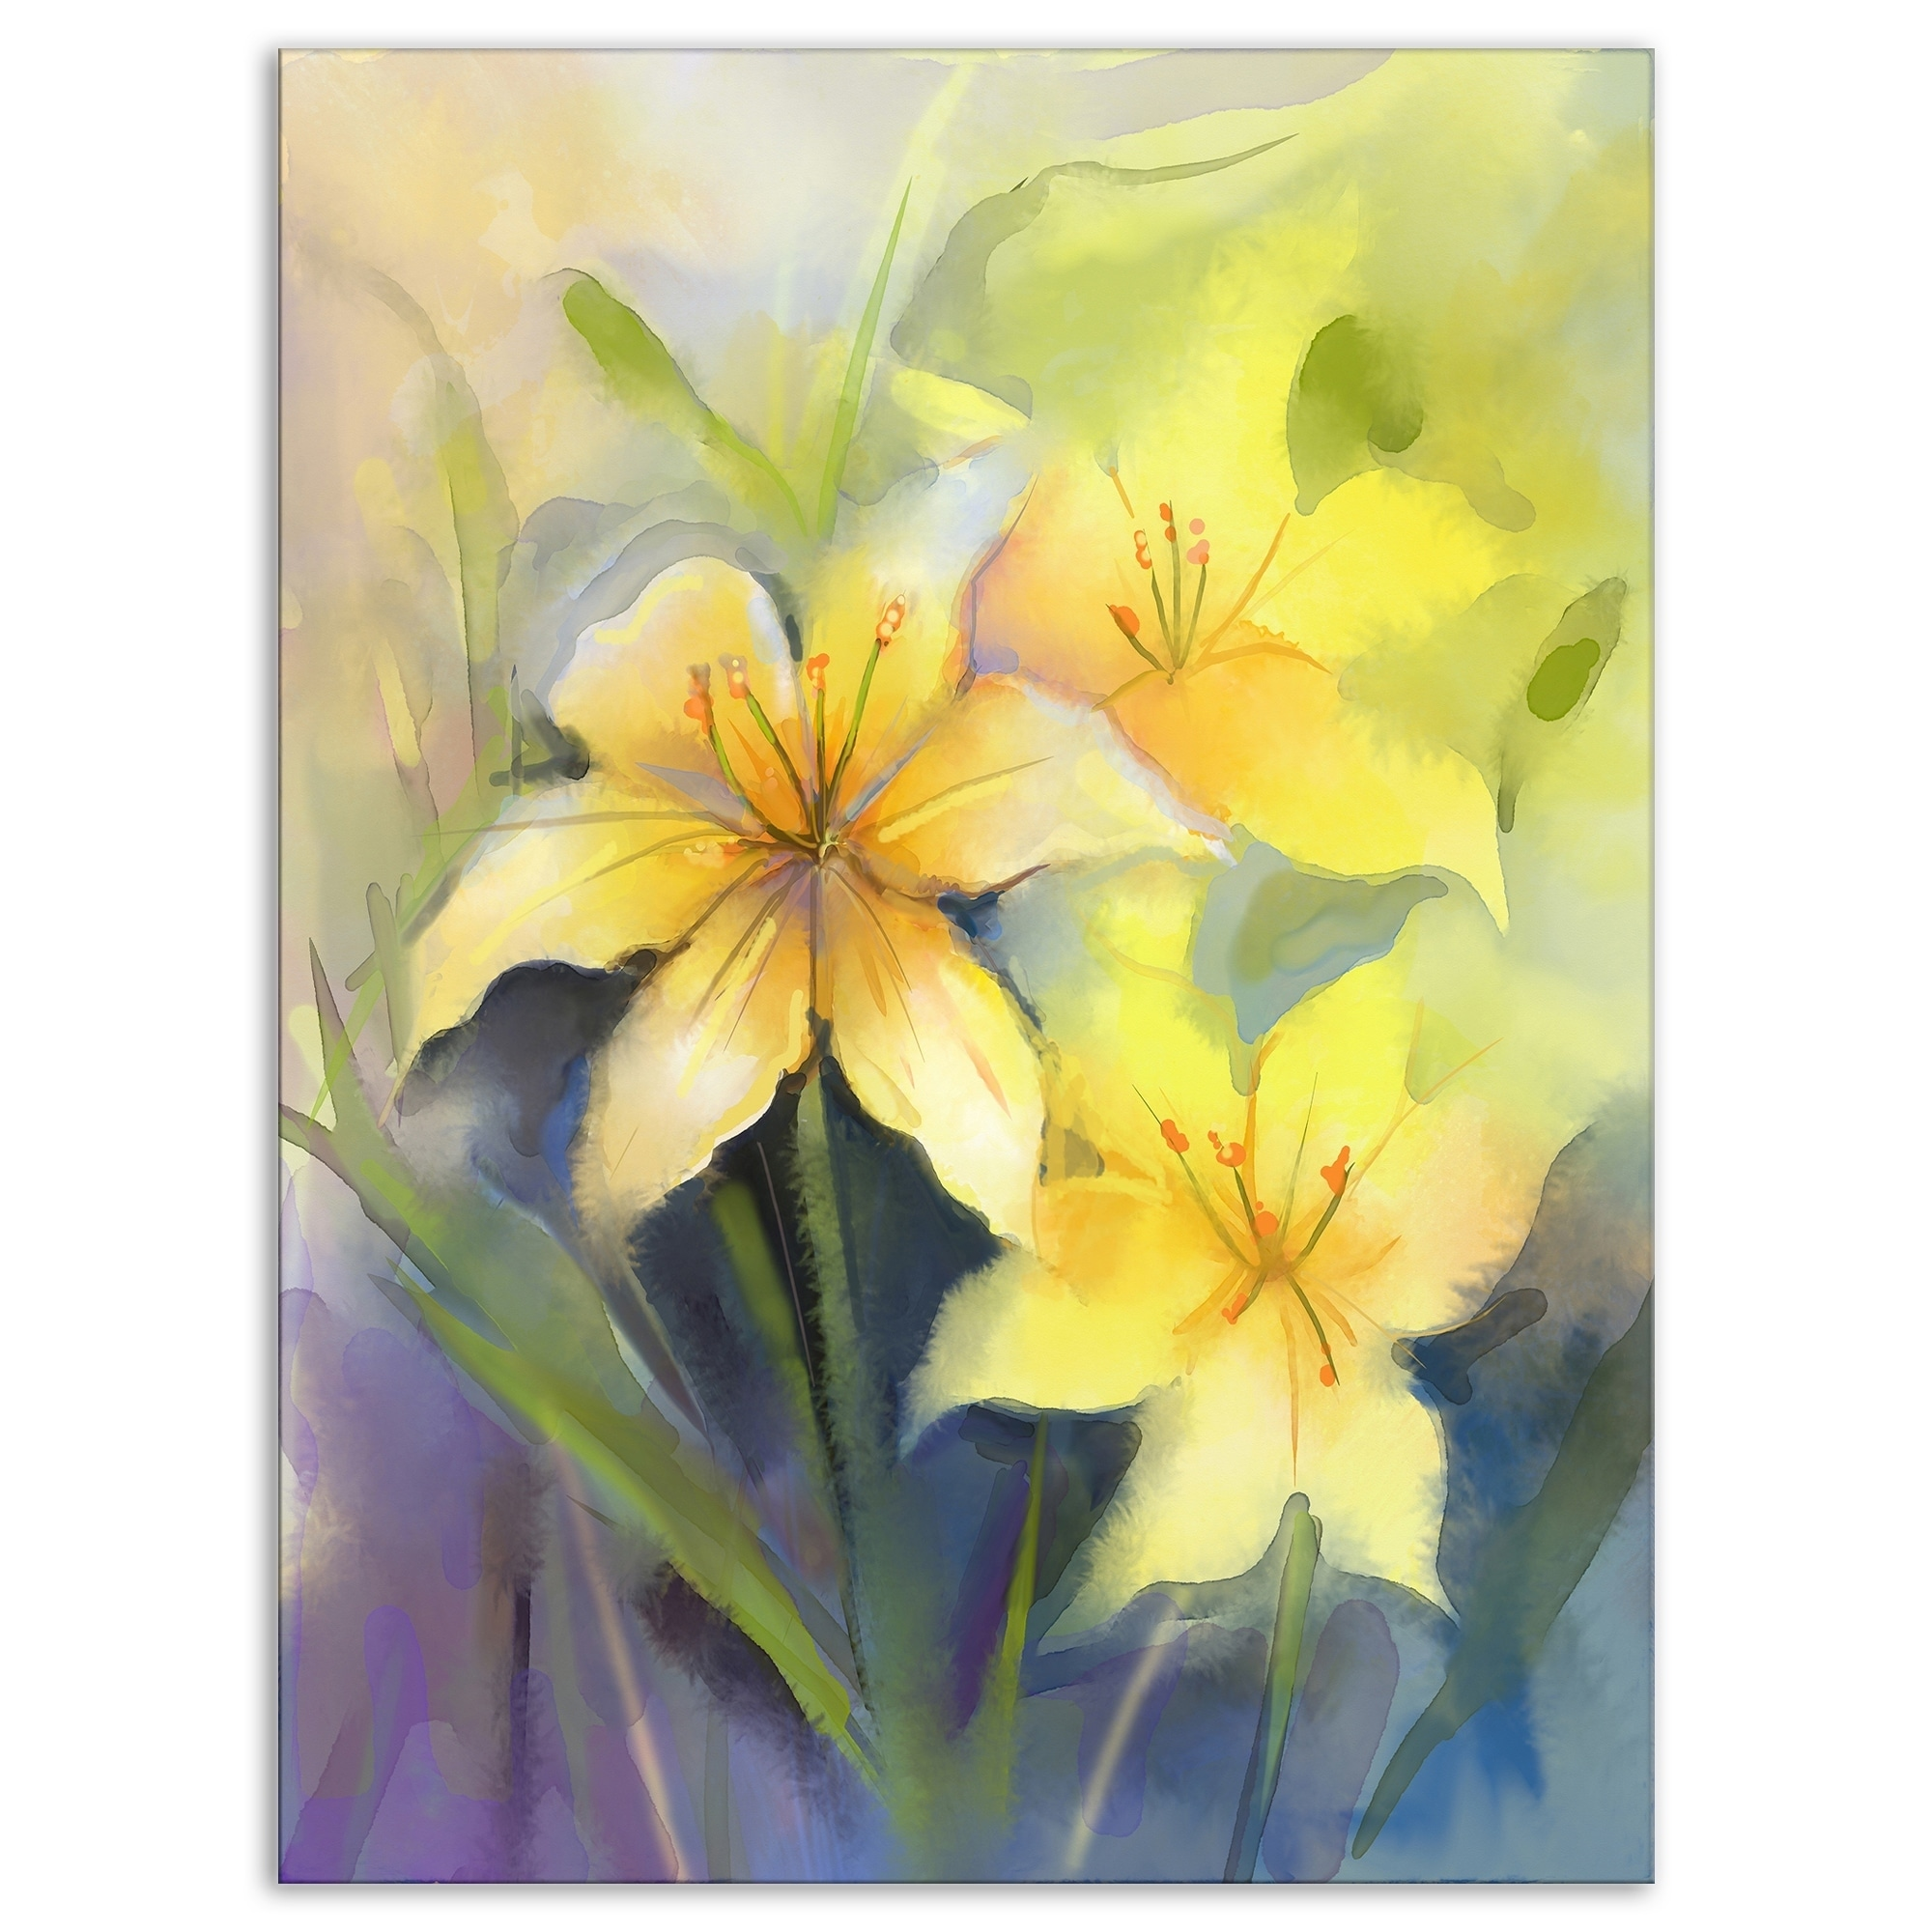 Shop watercolor painting yellow lily flower large floral canvas shop watercolor painting yellow lily flower large floral canvas artwork free shipping on orders over 45 overstock 13164998 izmirmasajfo